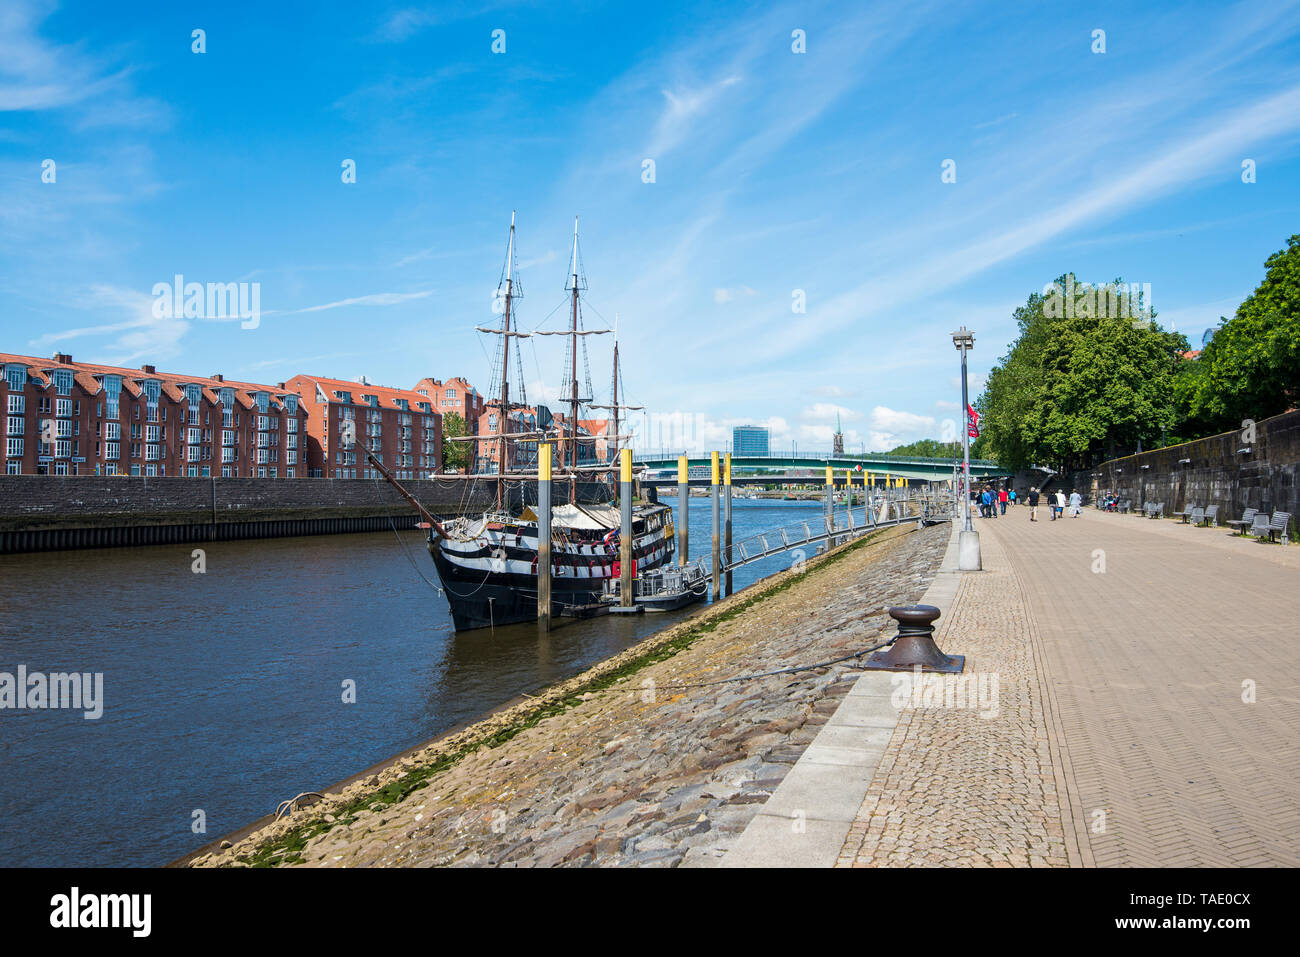 Germany, Bremen, Admiral Nelson sailing boat, restaurant ship on the Weser river - Stock Image